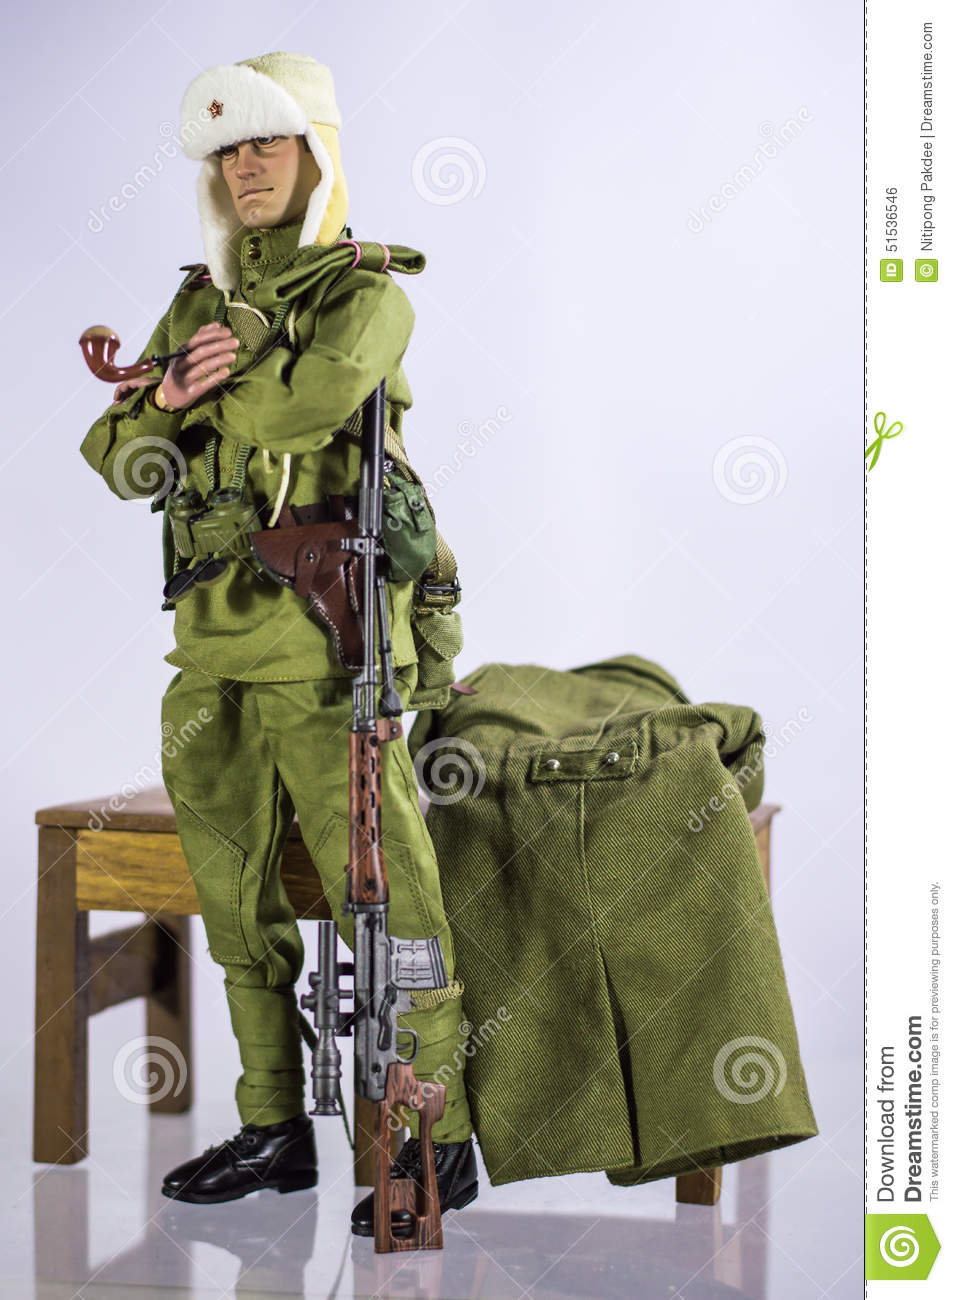 Toy Man Soldier Action Figure Miniature Realistic Silk ...